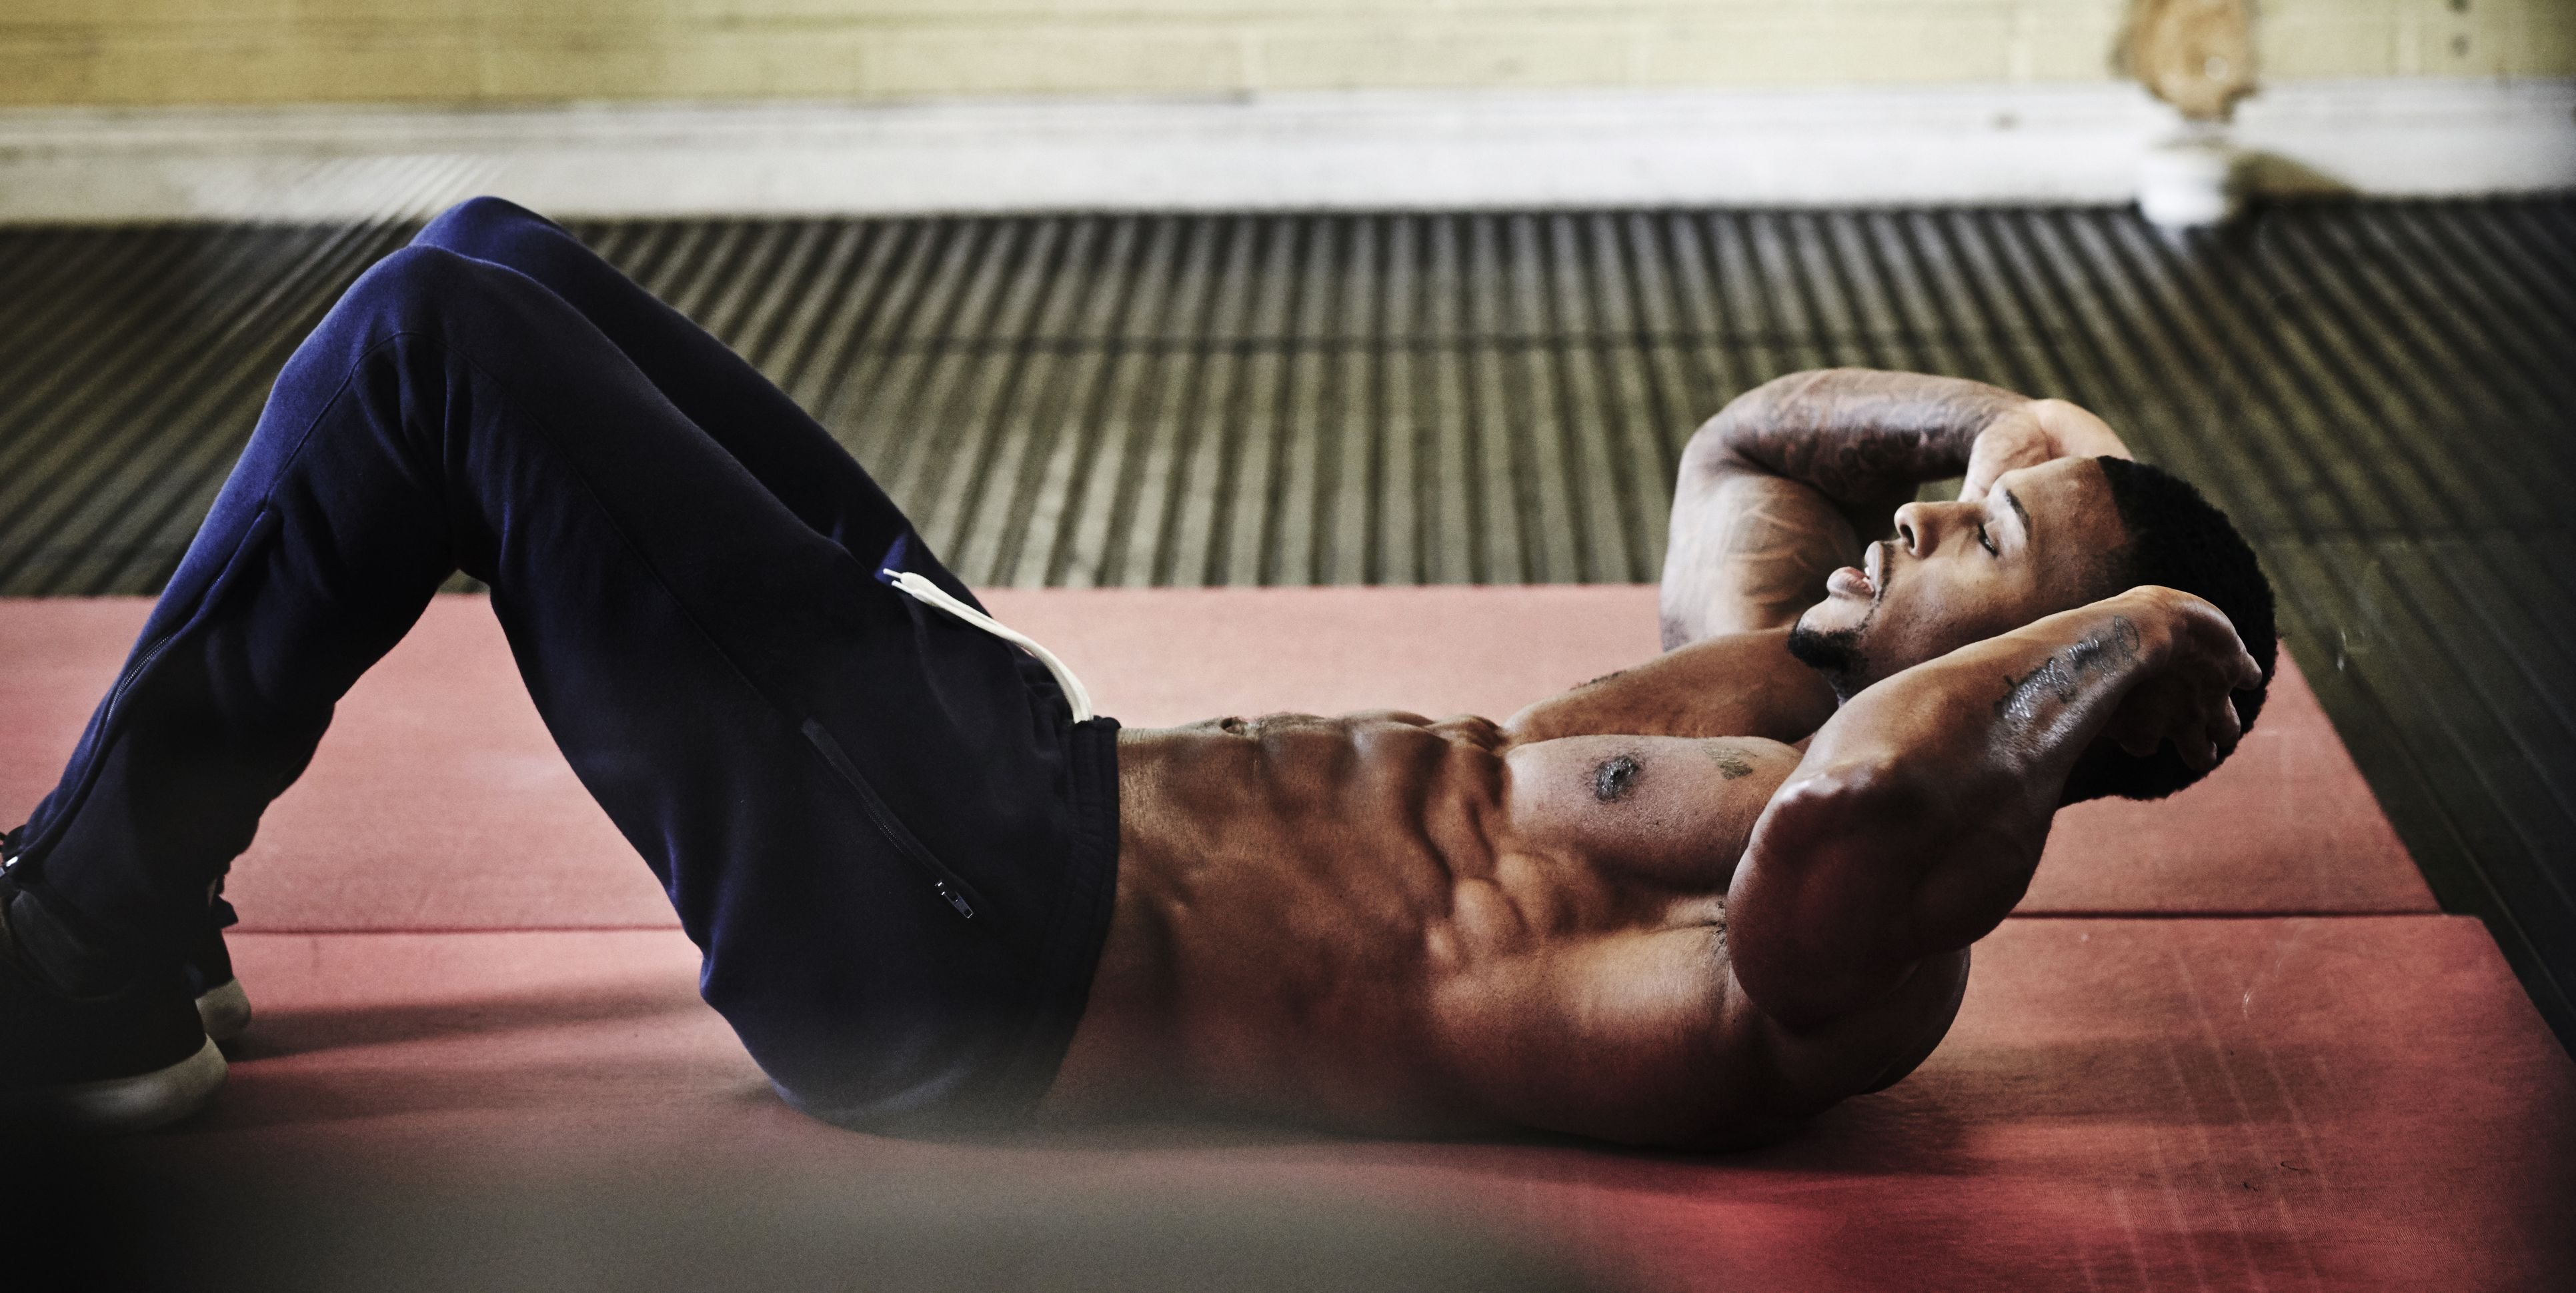 Want to Make Your Abs Even Better? Aim for the Obliques.